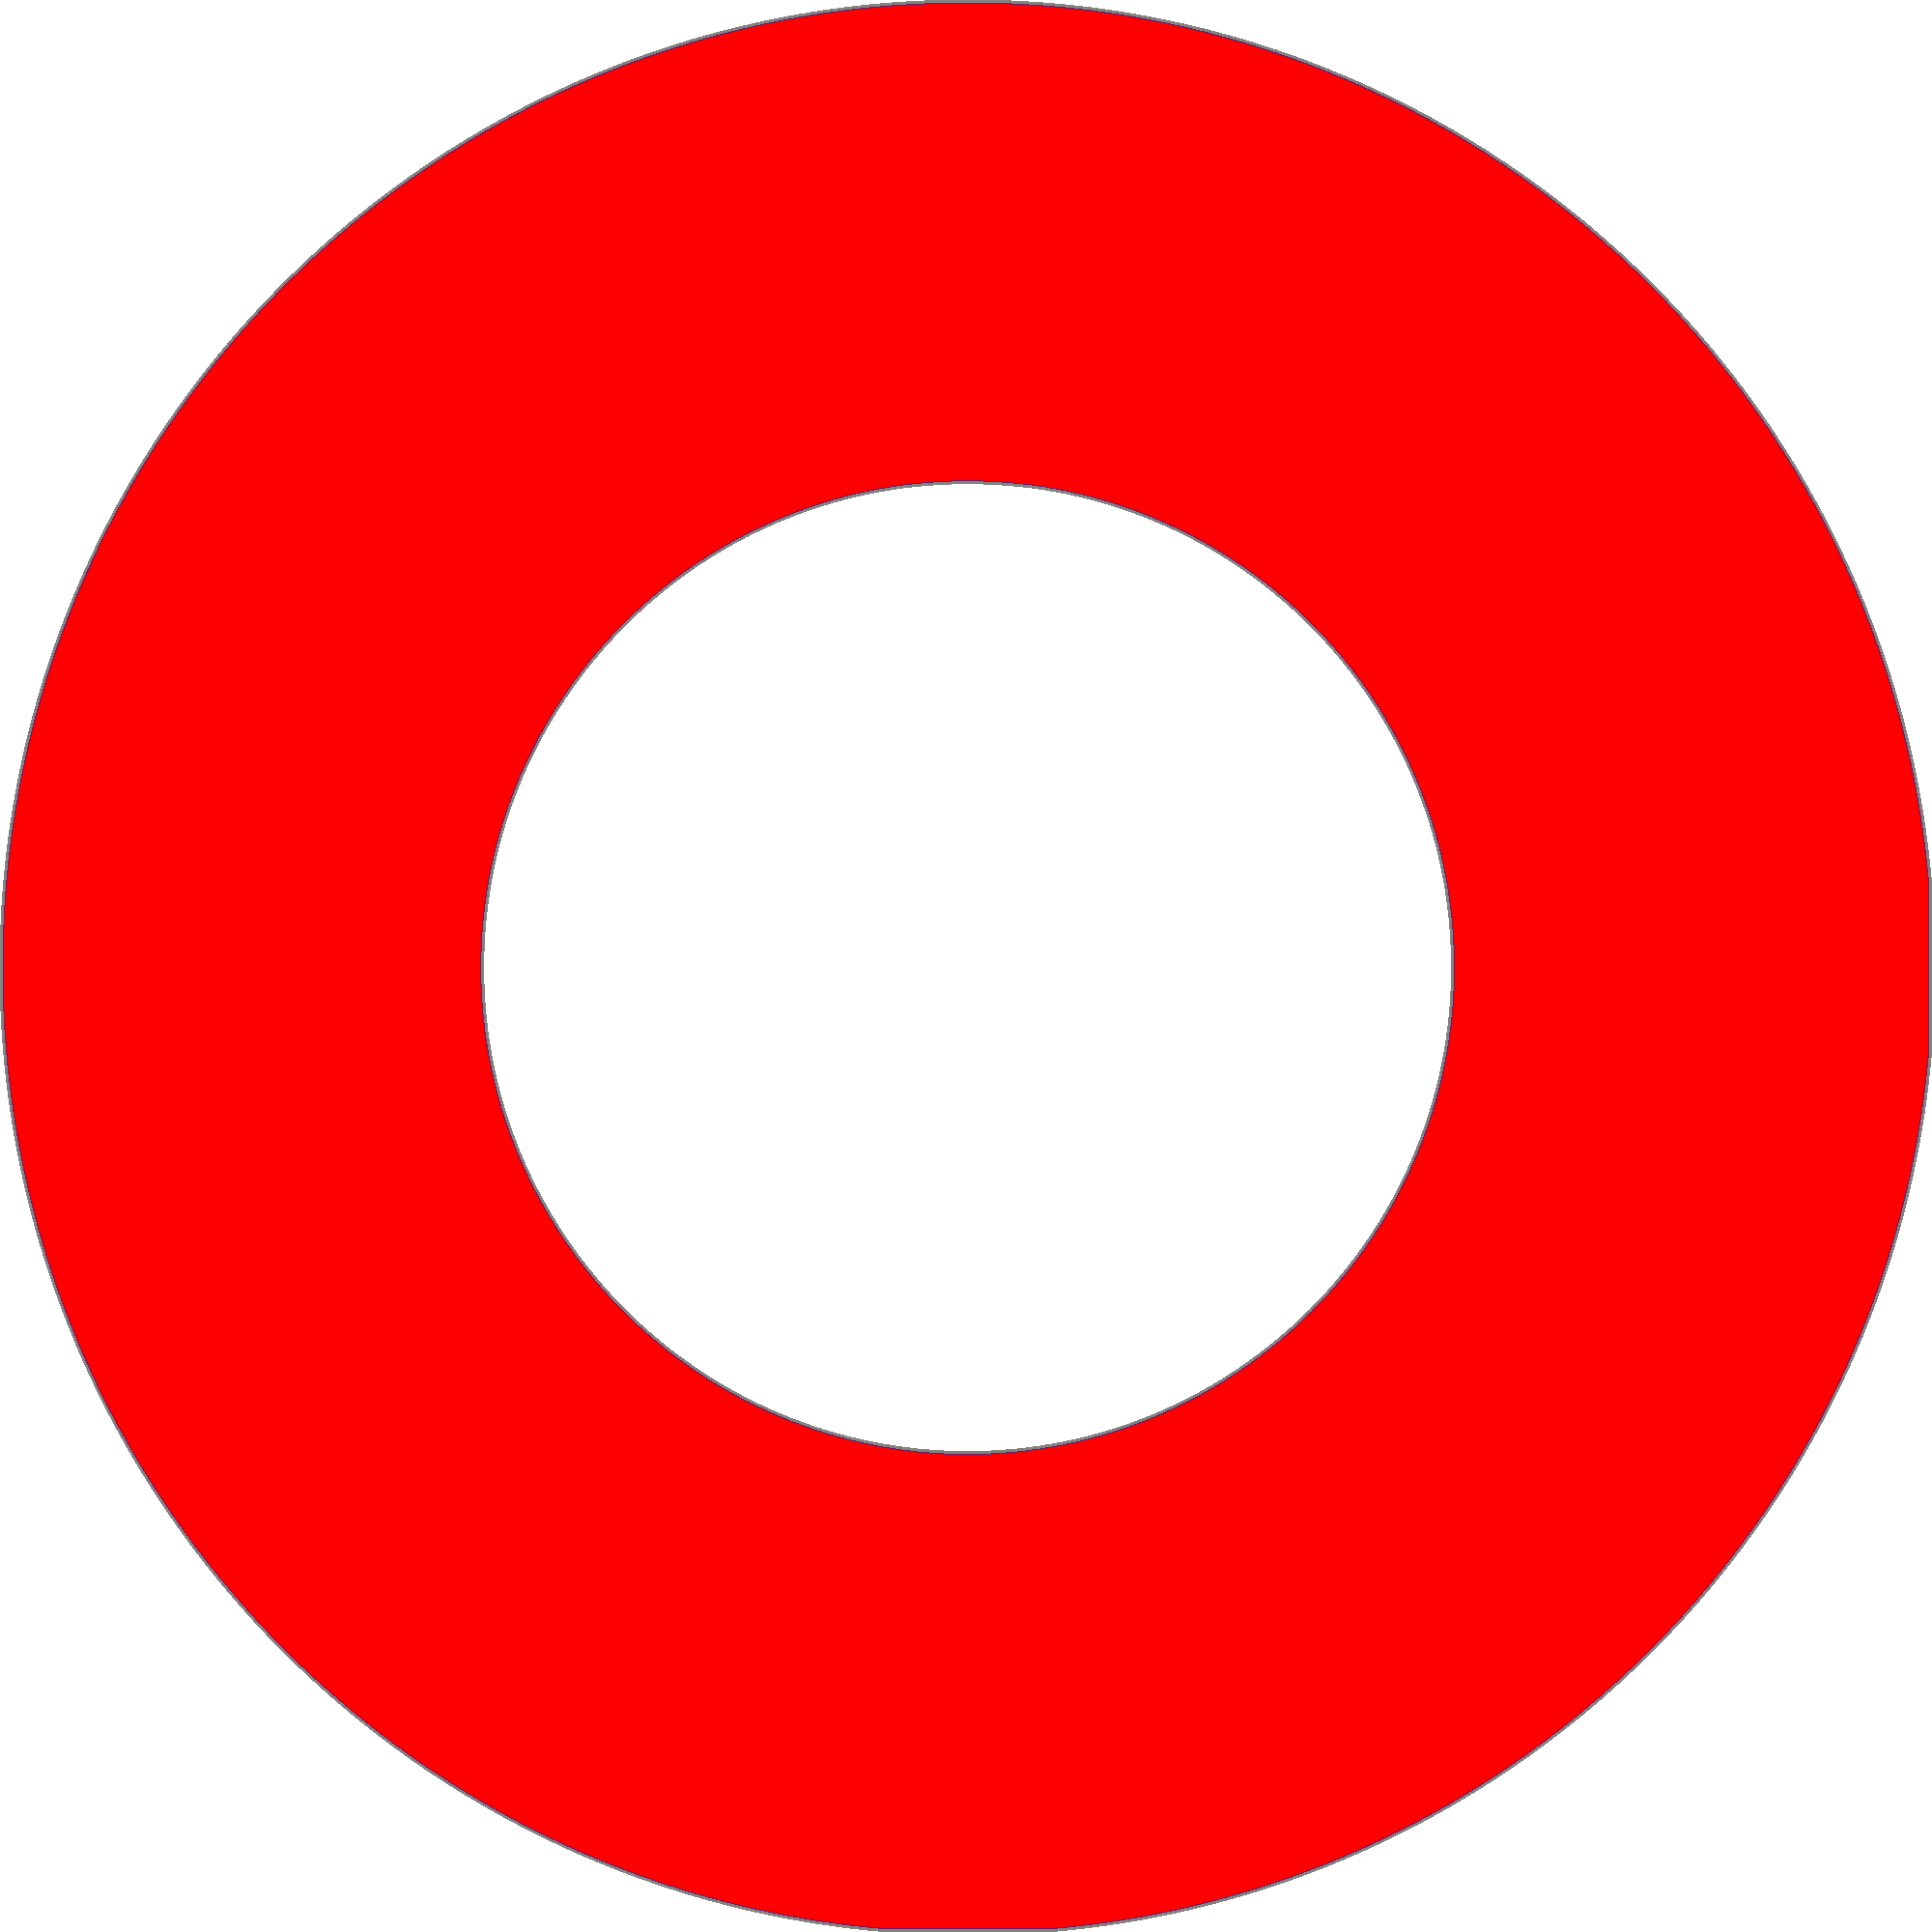 Red circle png. File wikimedia commons filered